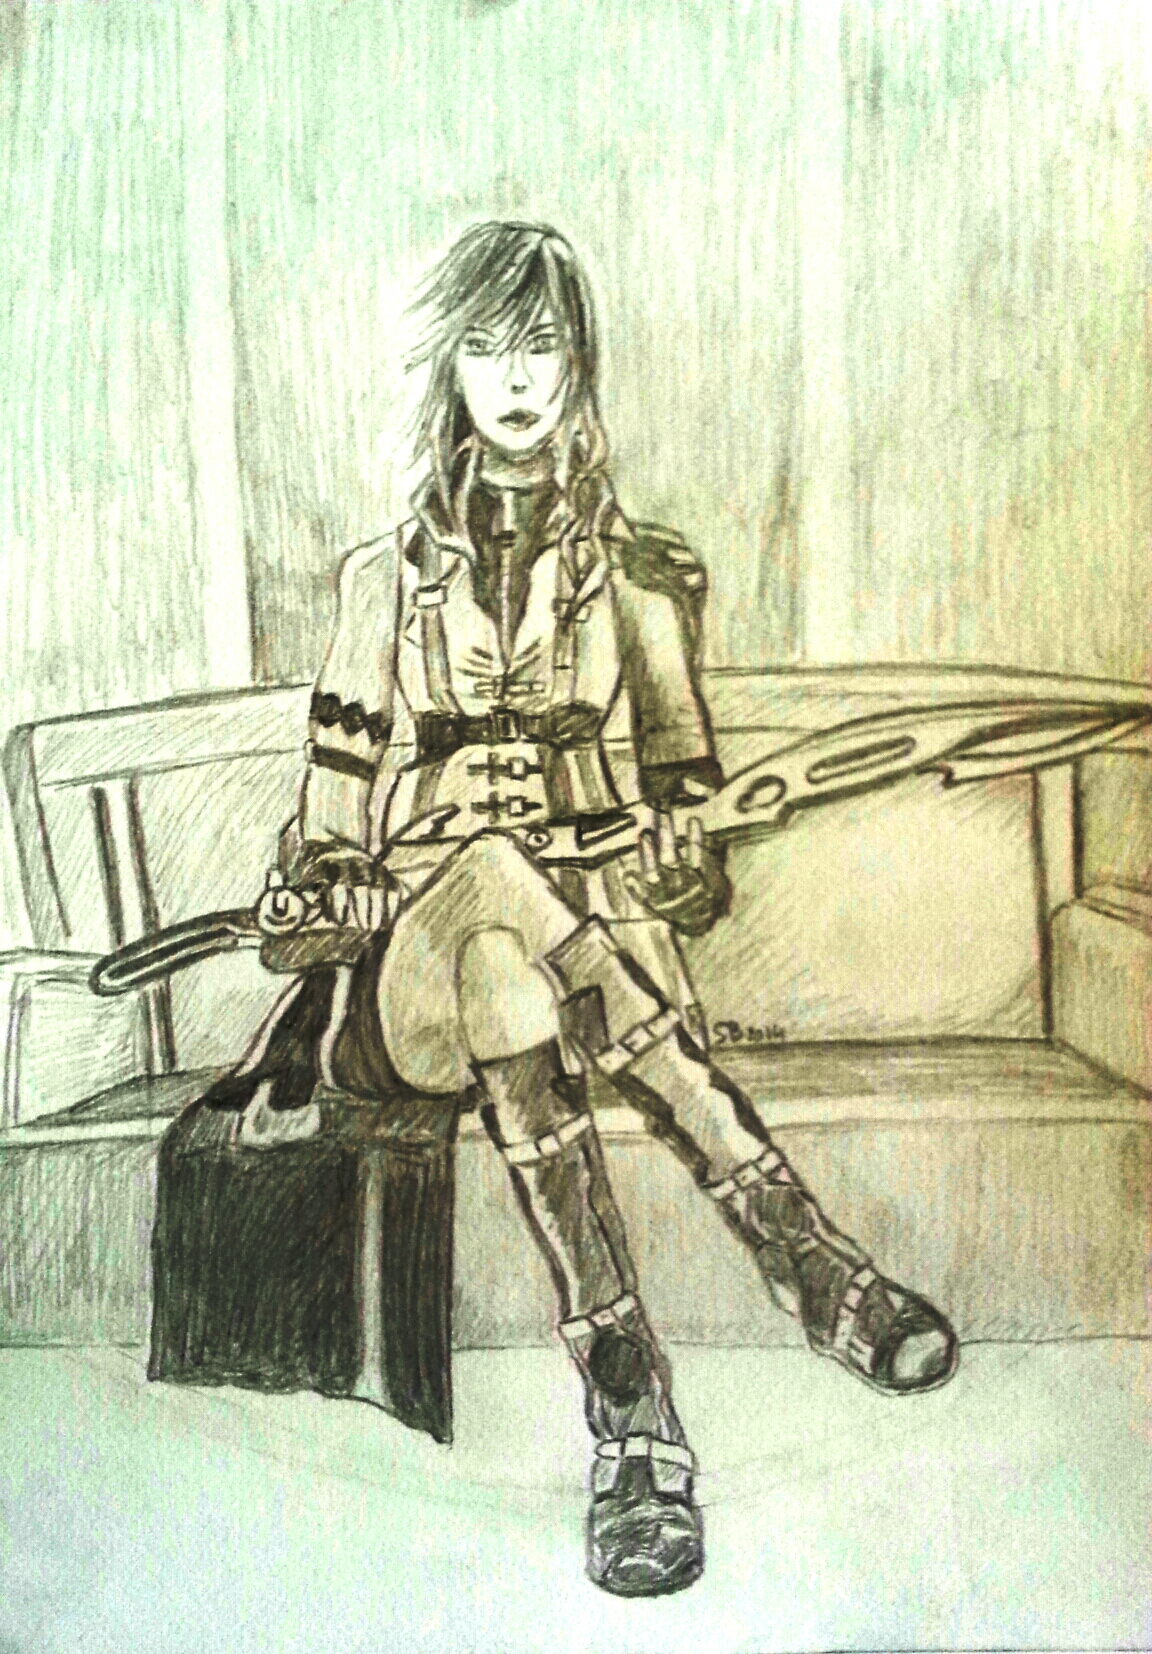 Fan Art Final Fantasy XIII by ShadowsLabs